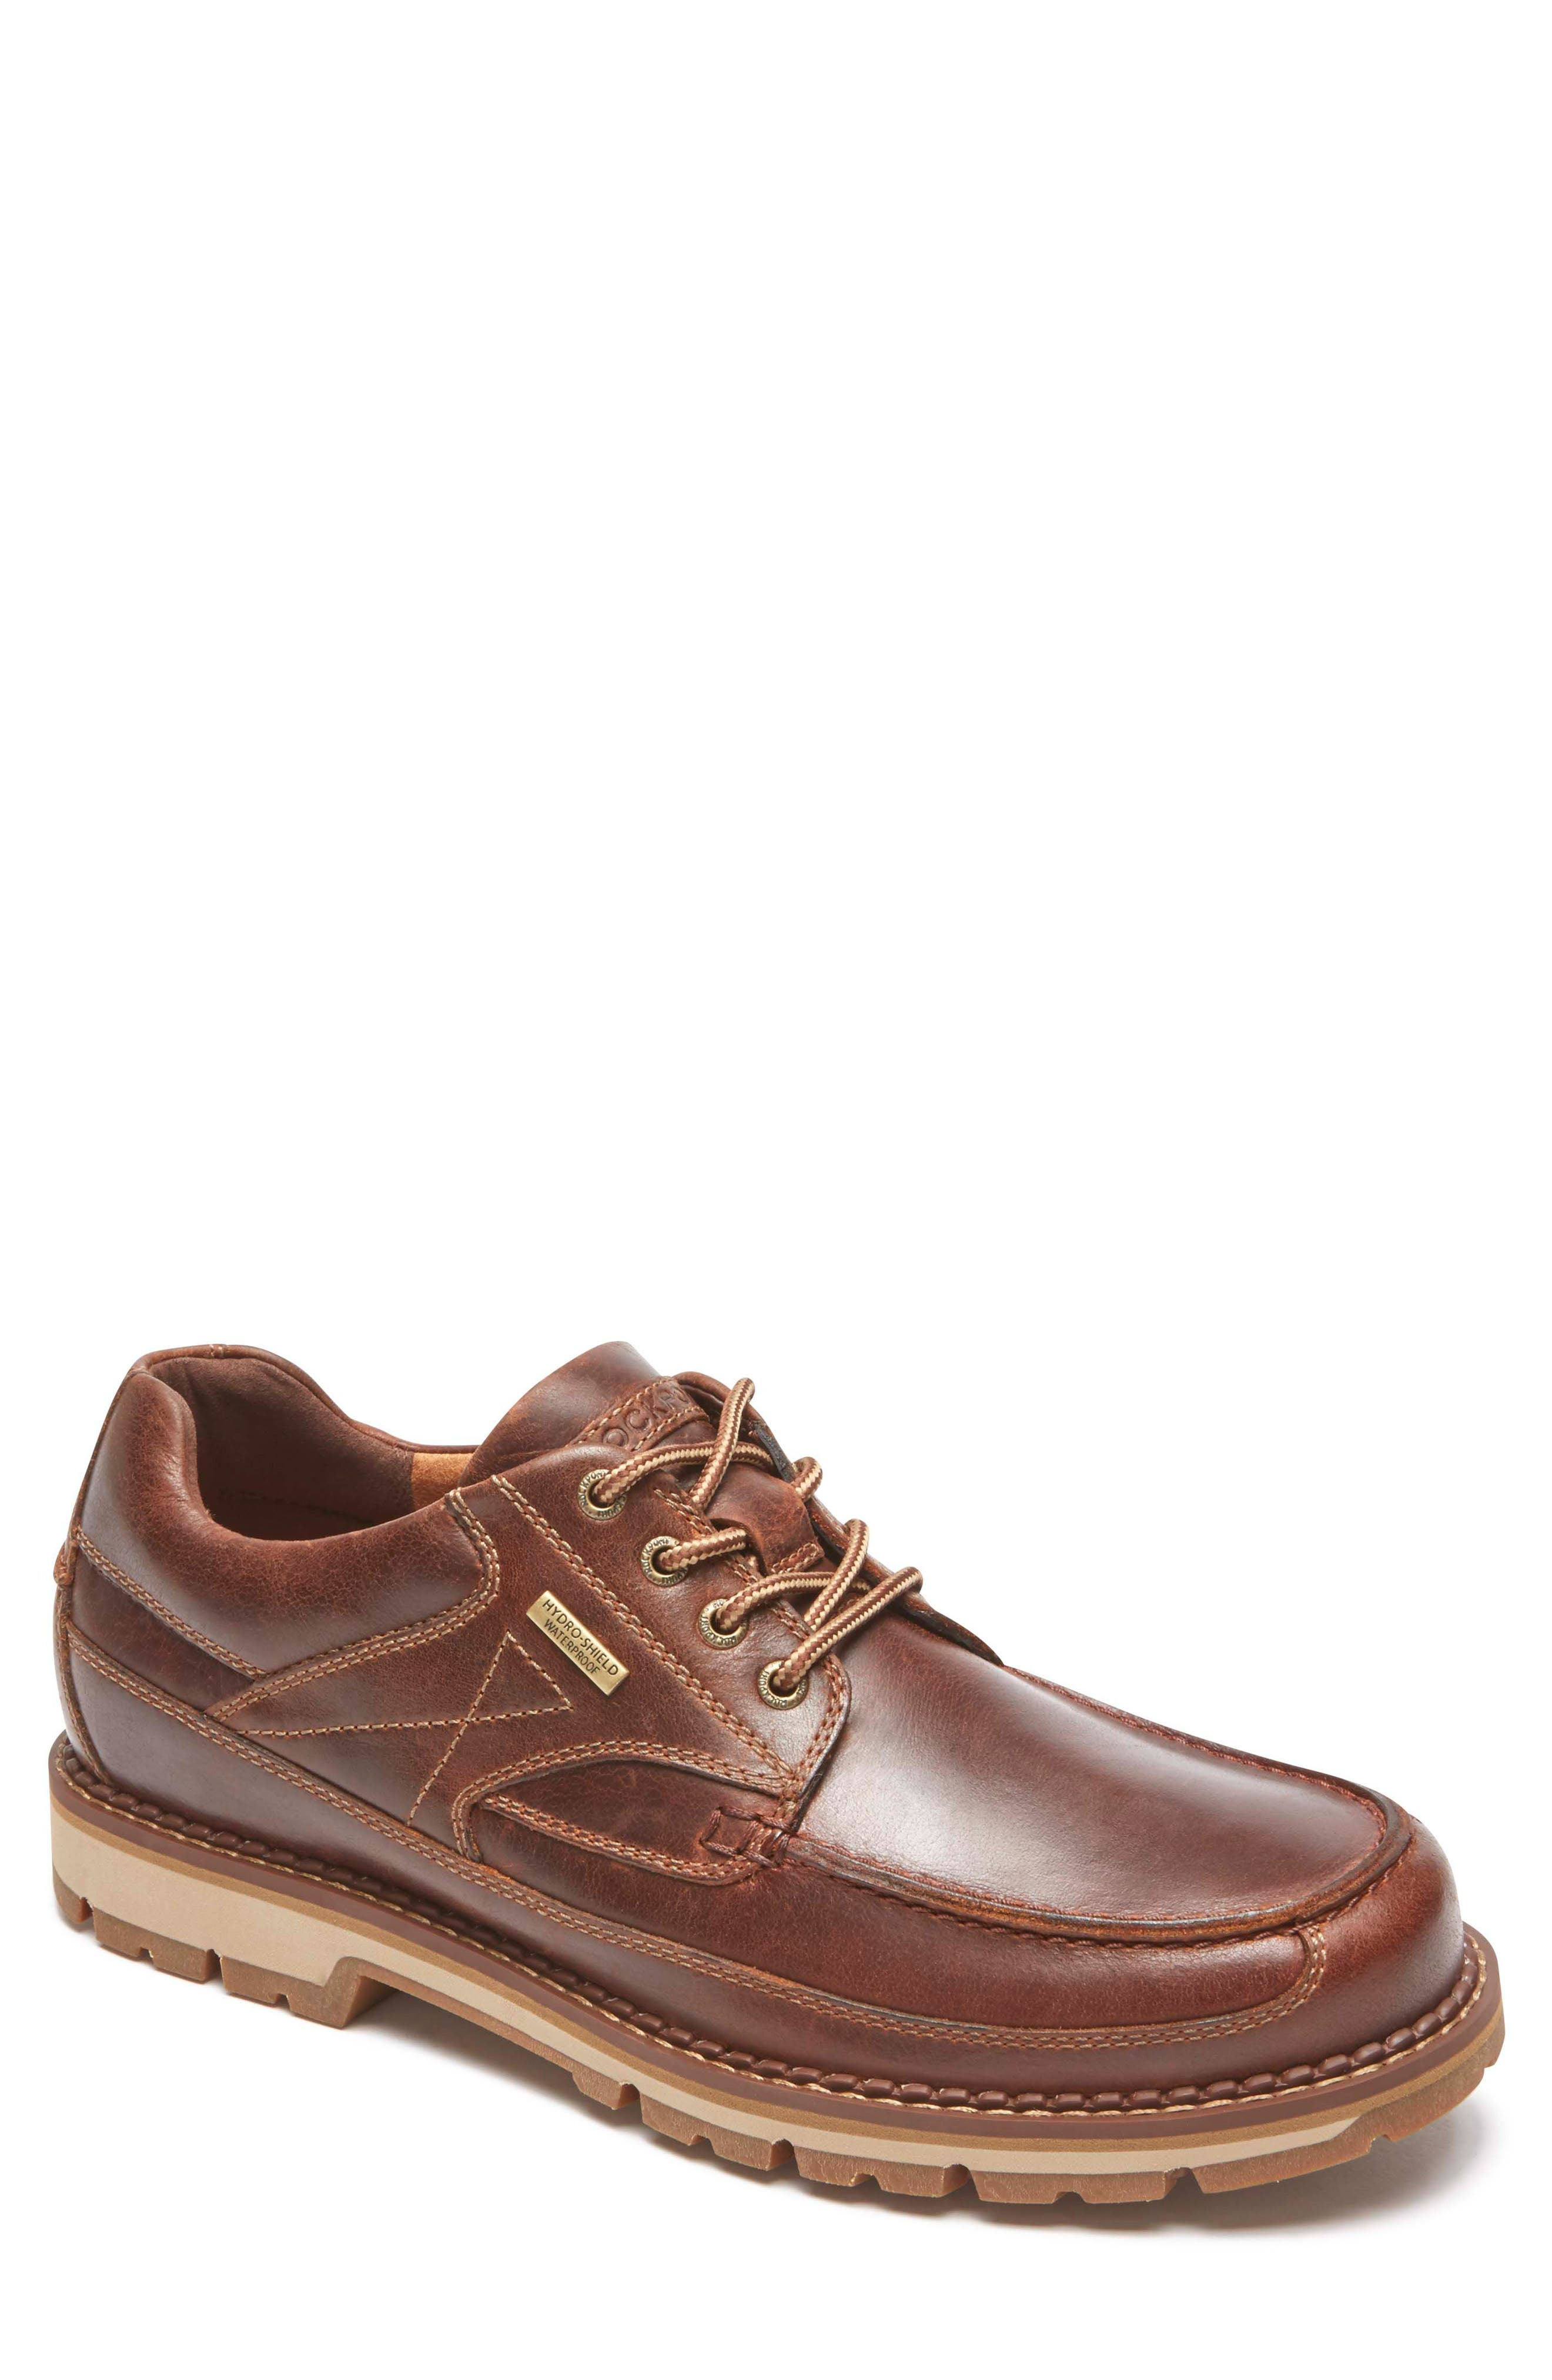 Centry Moc Toe Derby,                             Main thumbnail 1, color,                             Brown Leather